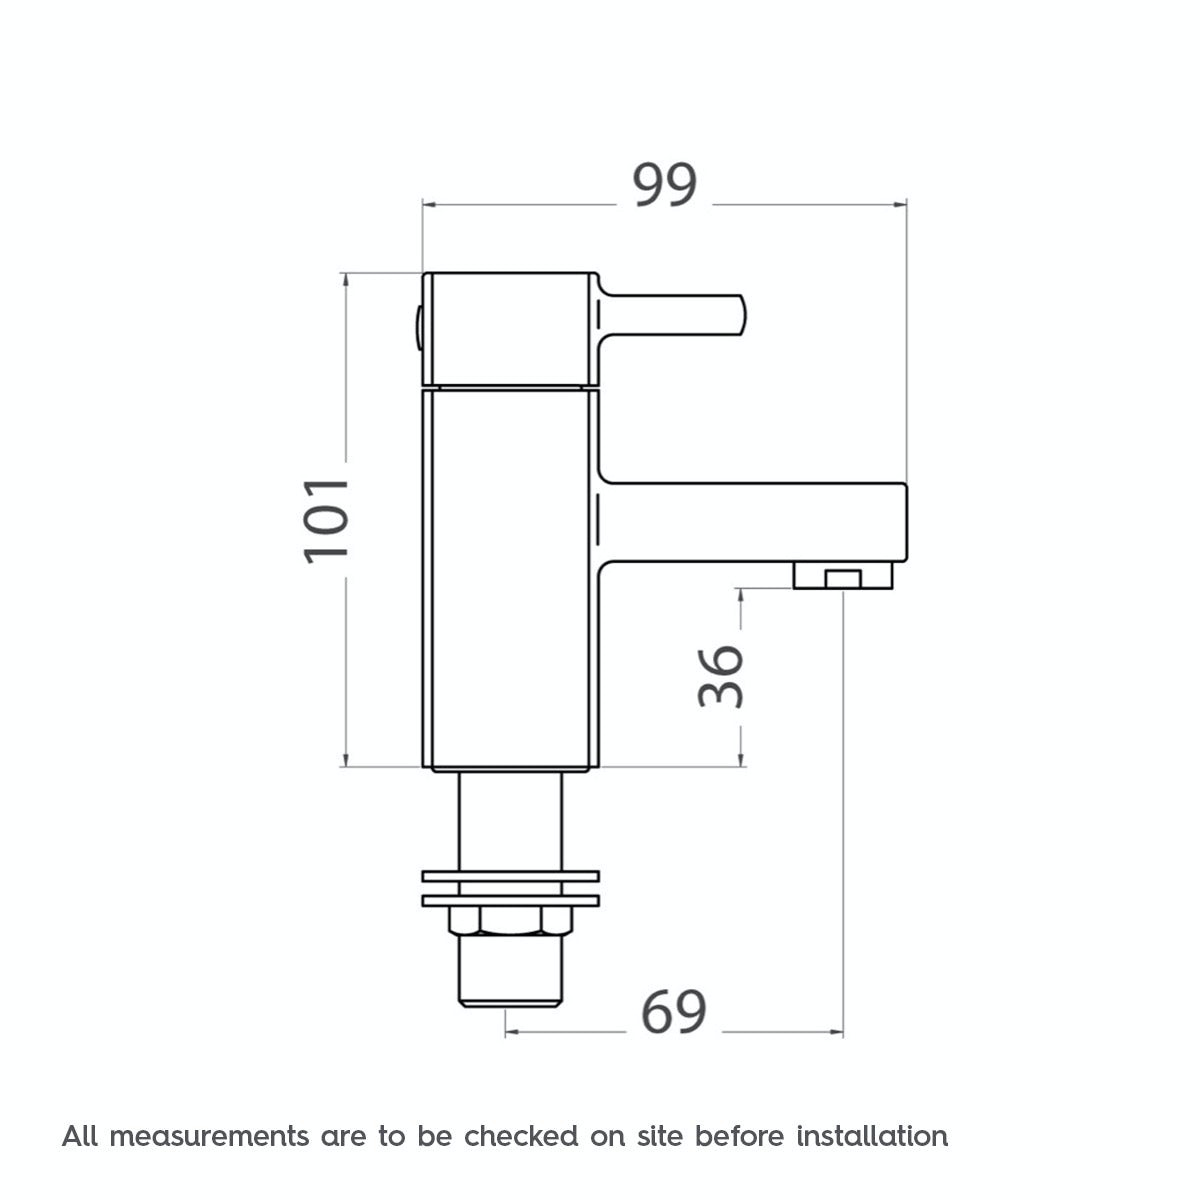 Dimensions for Orchard Derwent basin pillar taps